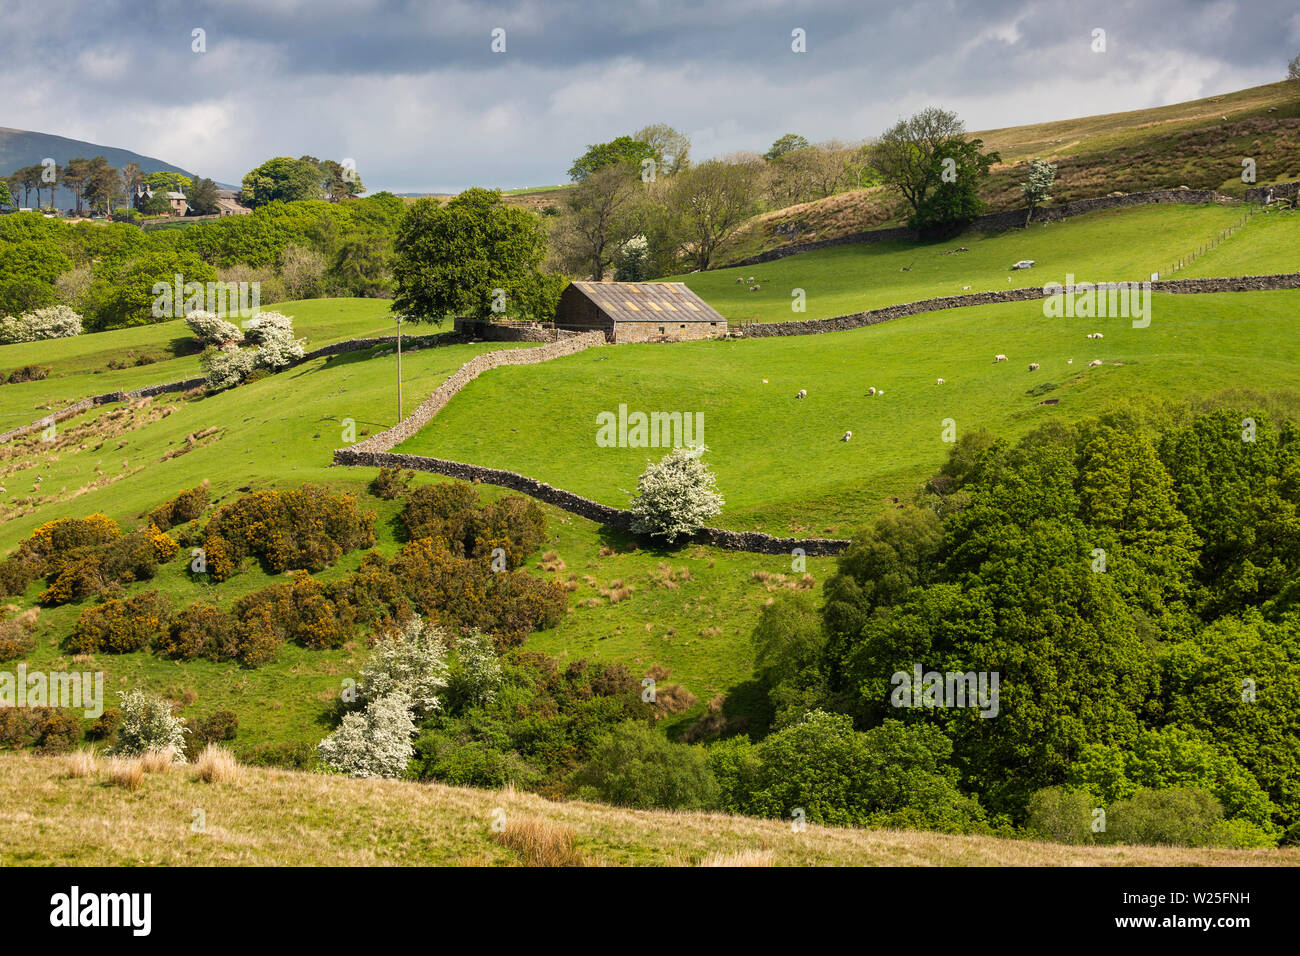 UK, Cumbria, Sedbergh, Frostrow and Soolbank, Low Fawes field barn in lowland farmland at Dovecote Gill Stock Photo